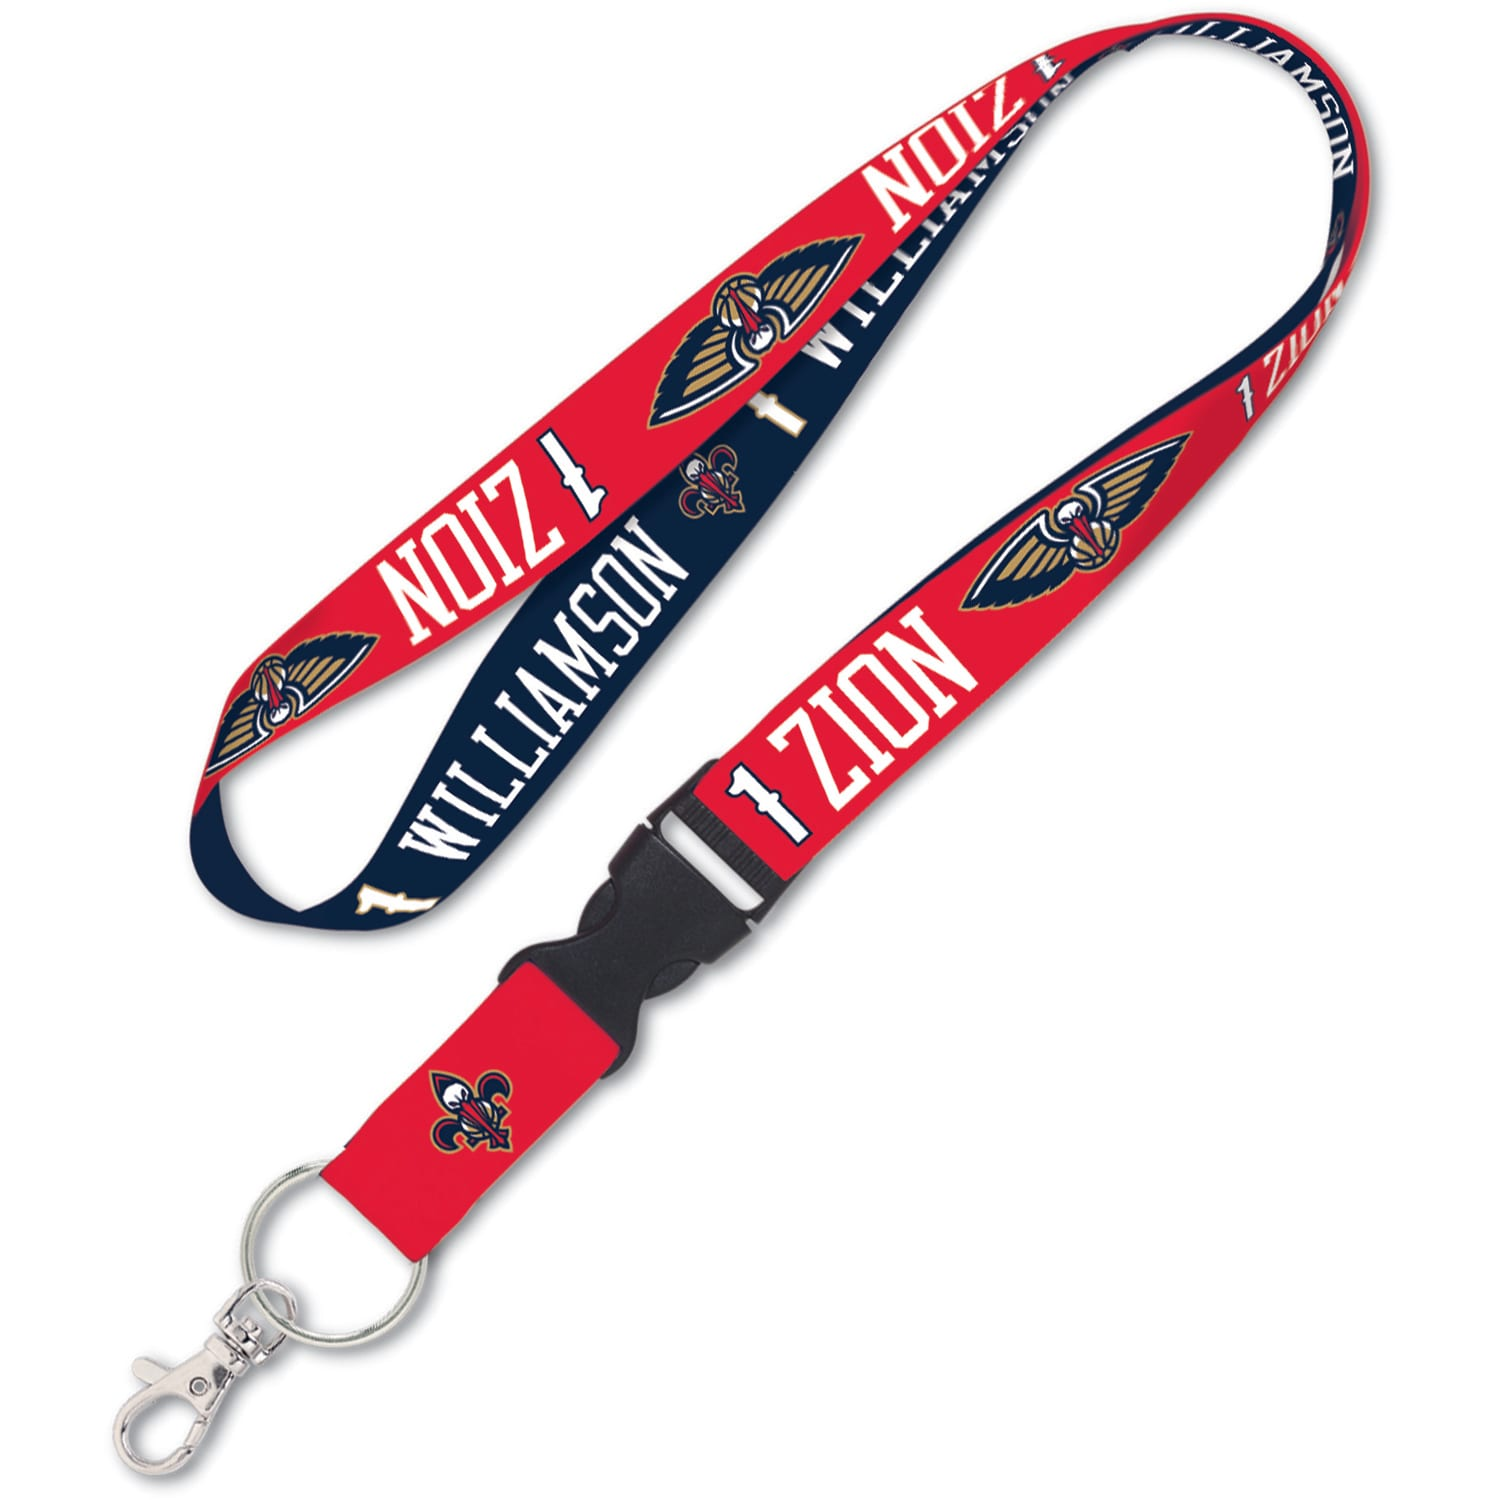 Zion Williamson New Orleans Pelicans WinCraft Player Buckle Lanyard